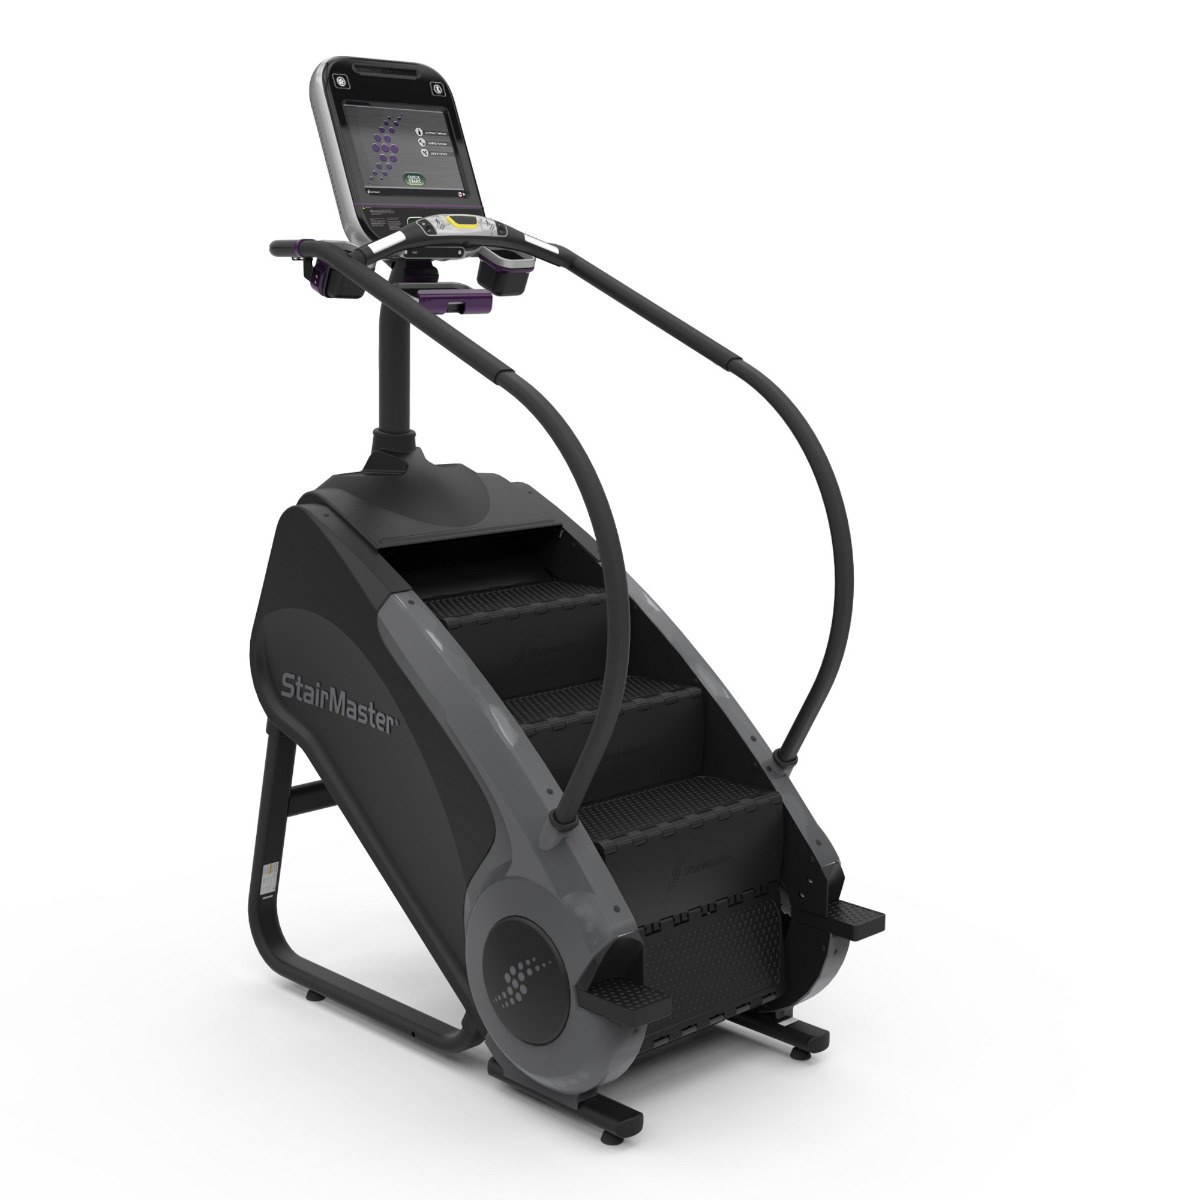 StairMaster 8 Series Gauntlet with 15